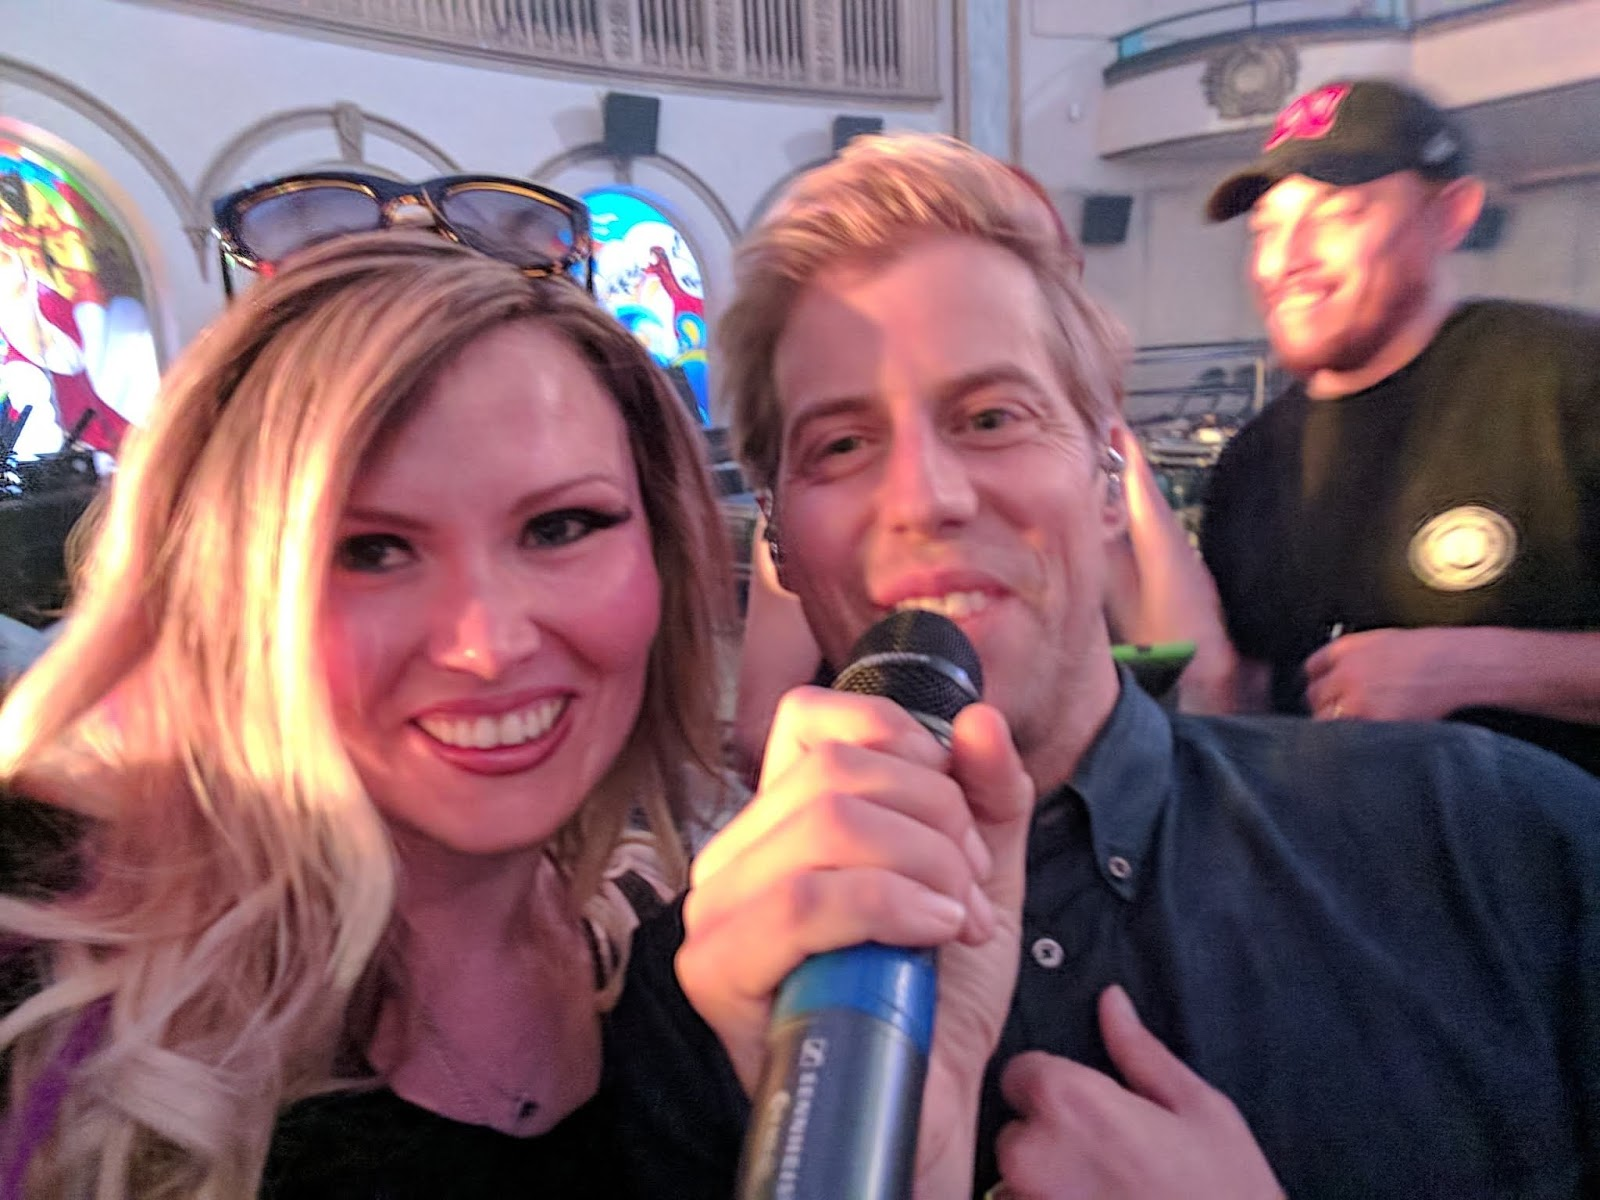 Andrew McMahon taking selfie during soundcheck Seattle zombies in america tour something corporate jack's mannequin groupie